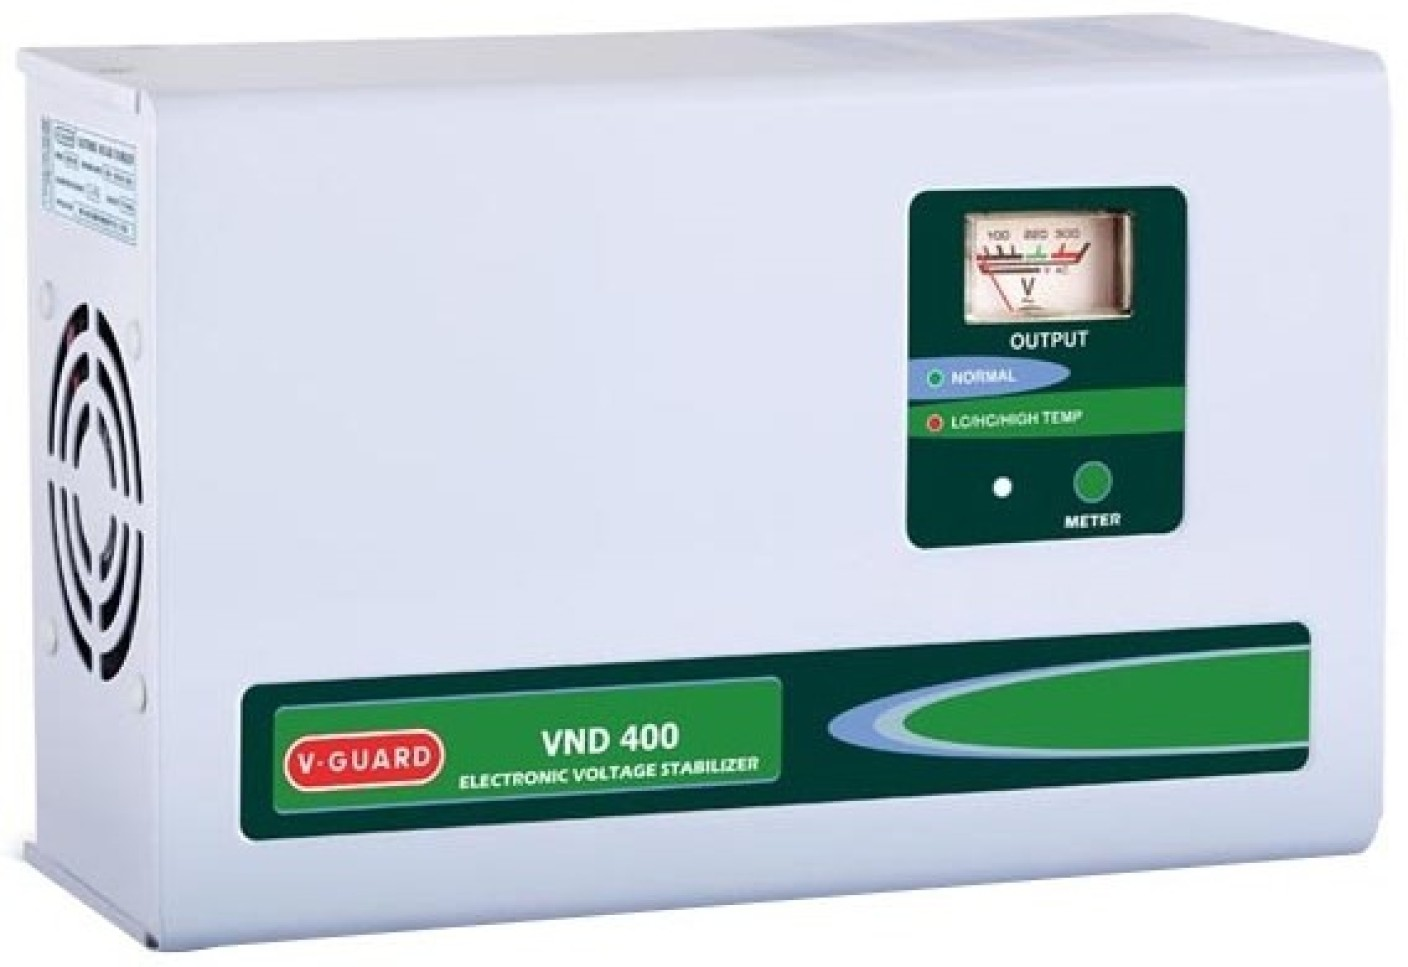 V Guard Vnd400 Voltage Stabilizer For 1 5 Tonn Ac Price In